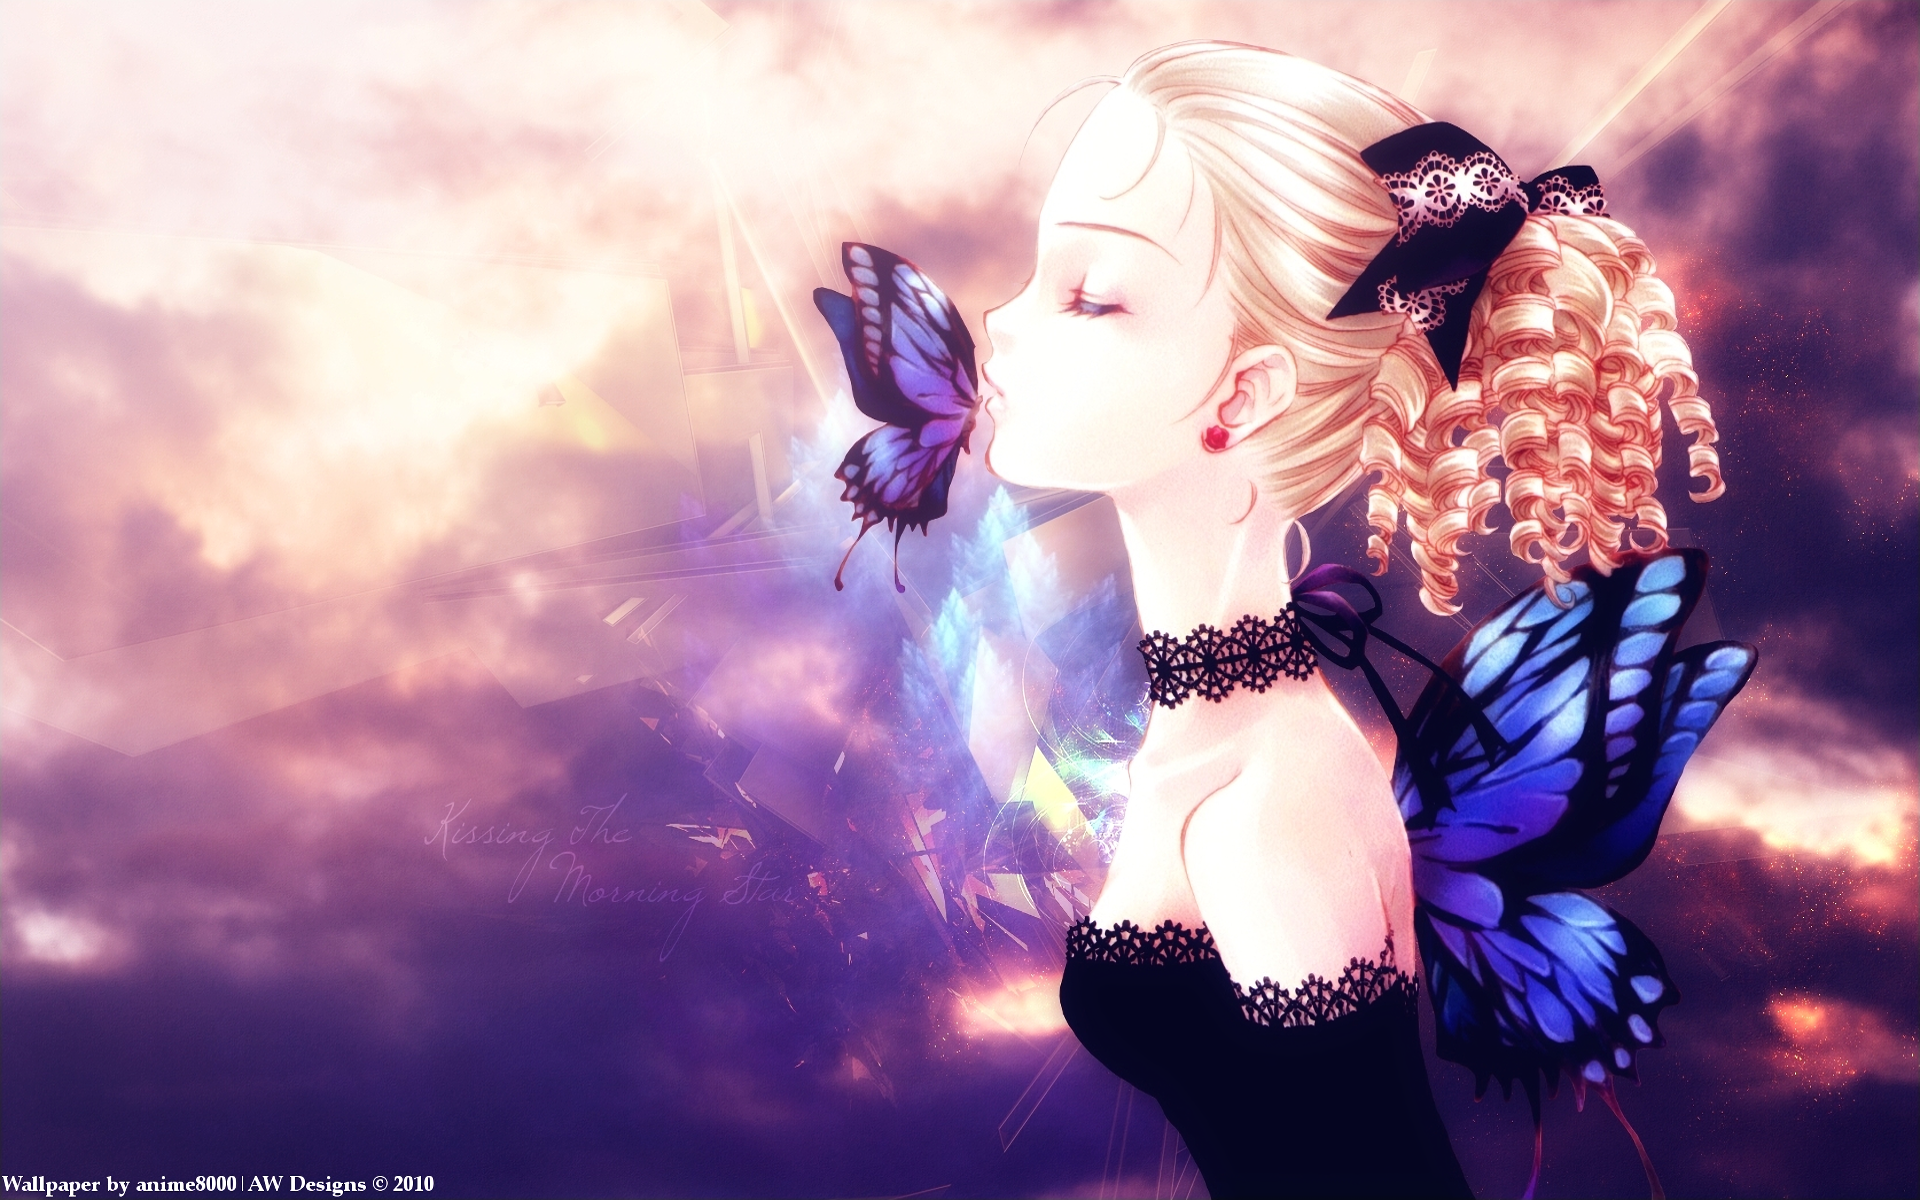 Anime Original Girl Fairy Butterfly Blonde Wings Kiss Wallpaper Anime Butterfly Blue Butterfly Wings Female Anime